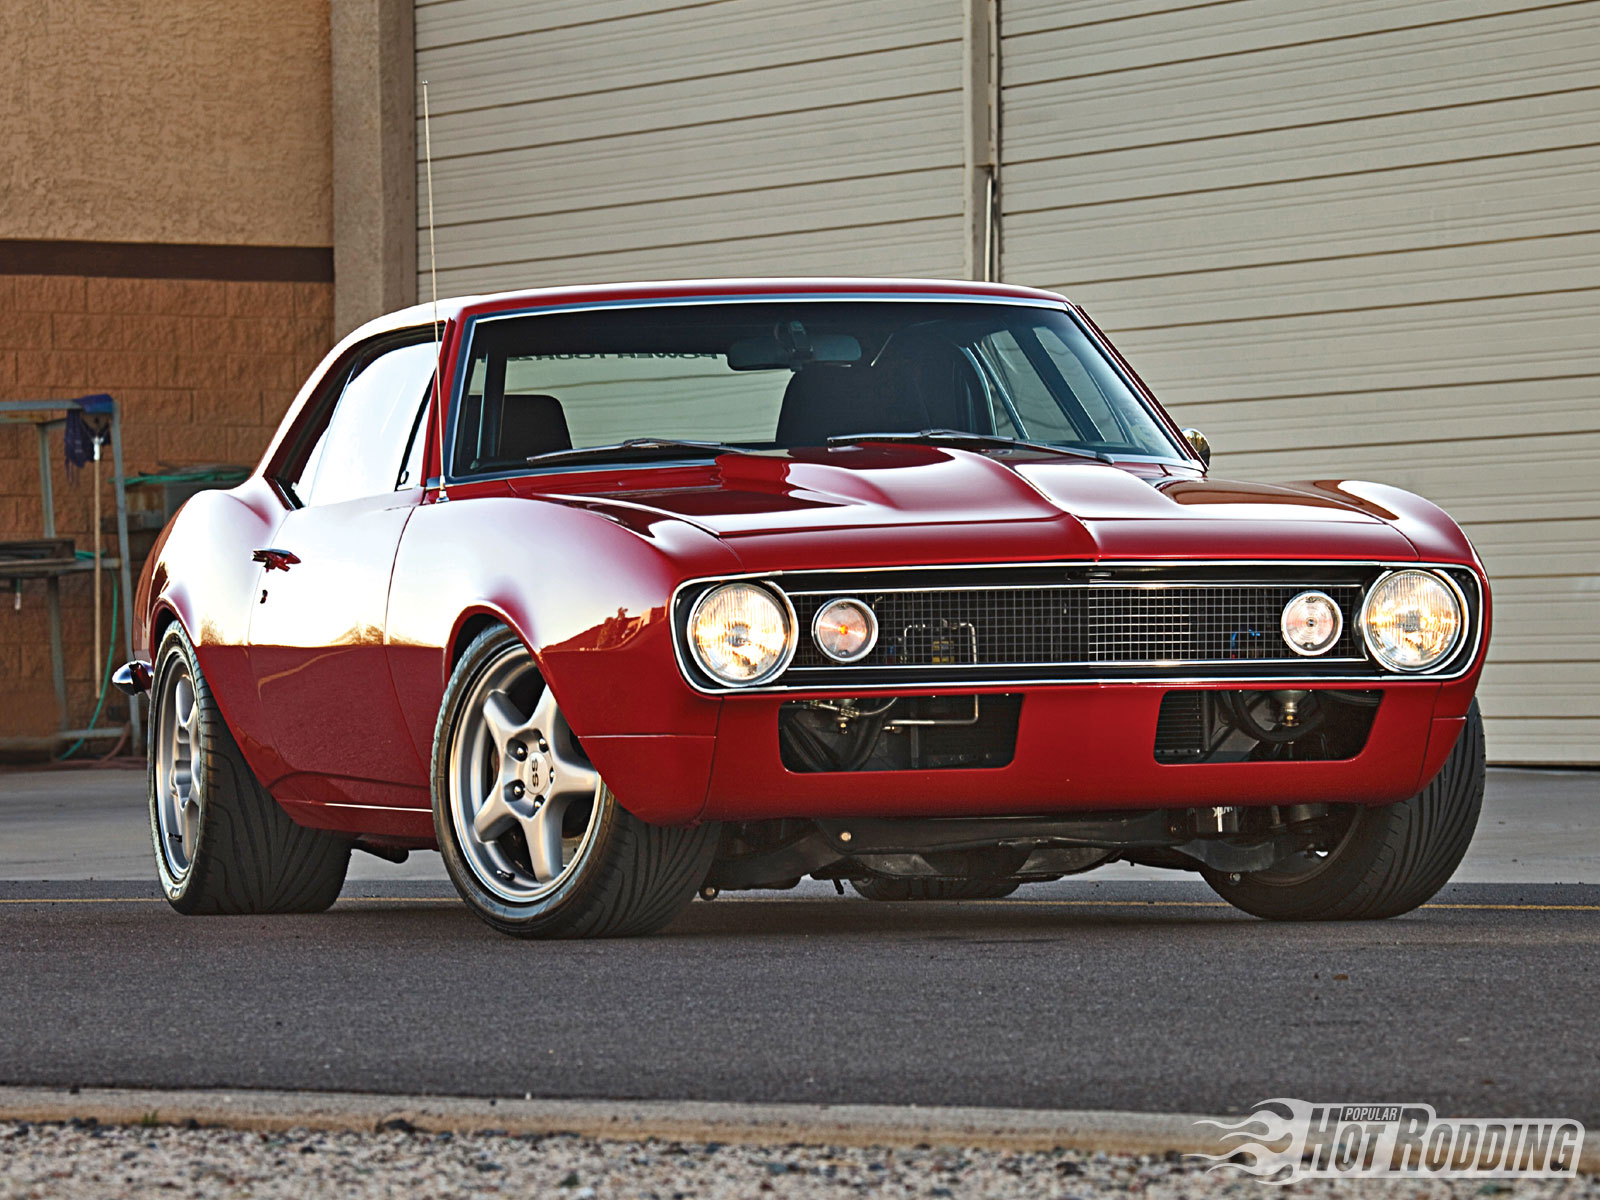 1967 chevrolet camaro wallpaper and background image | 1600x1200